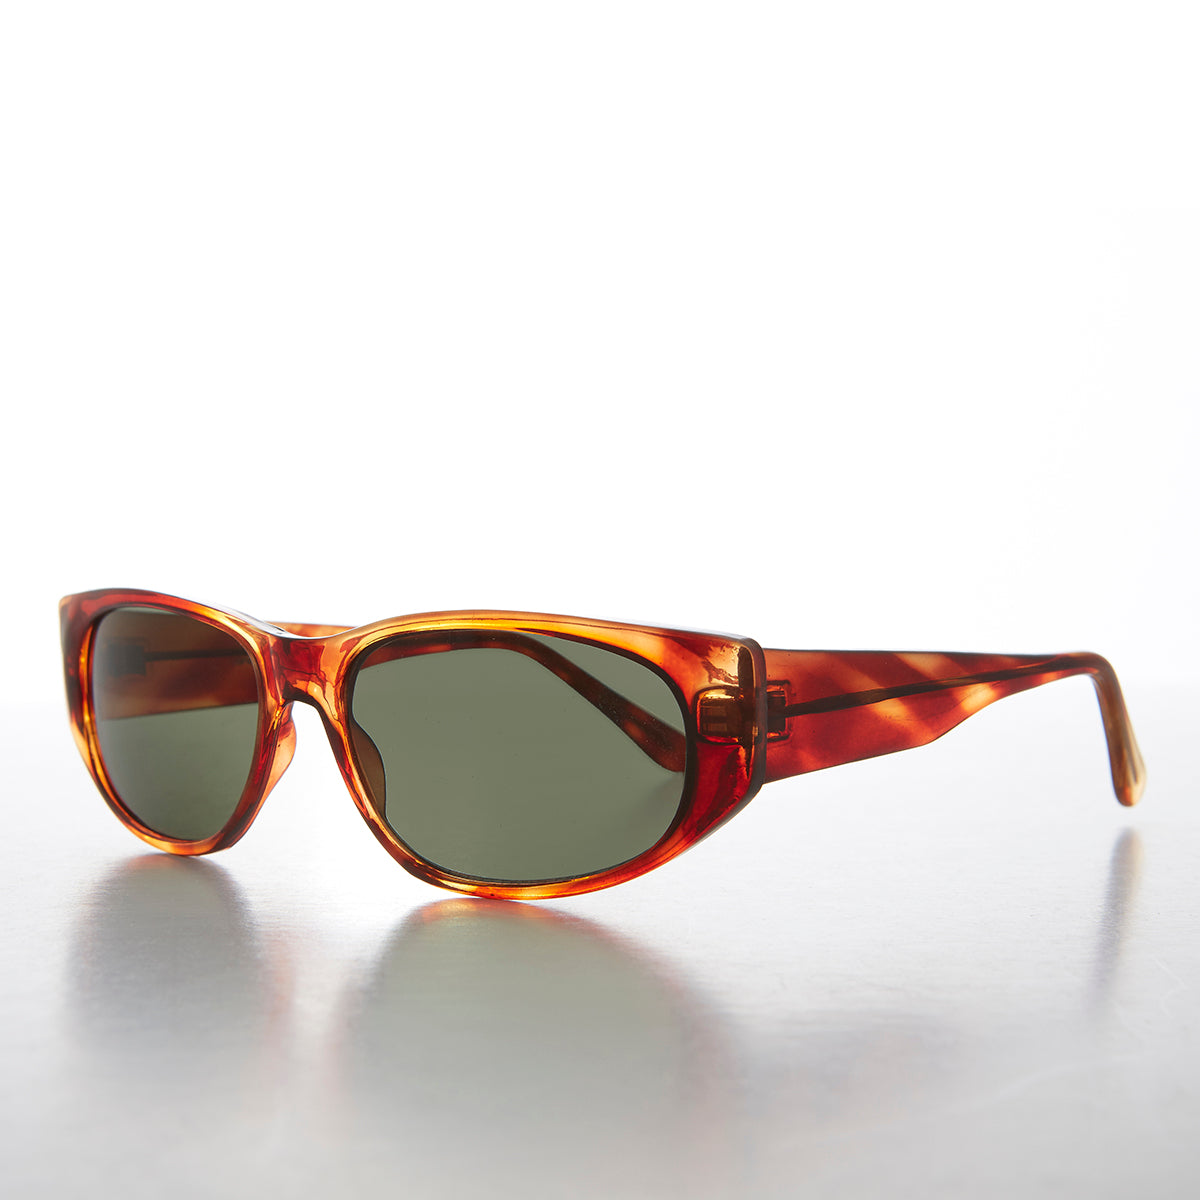 Wide Slim Rectangular Sporty Hipster Vintage Sunglass